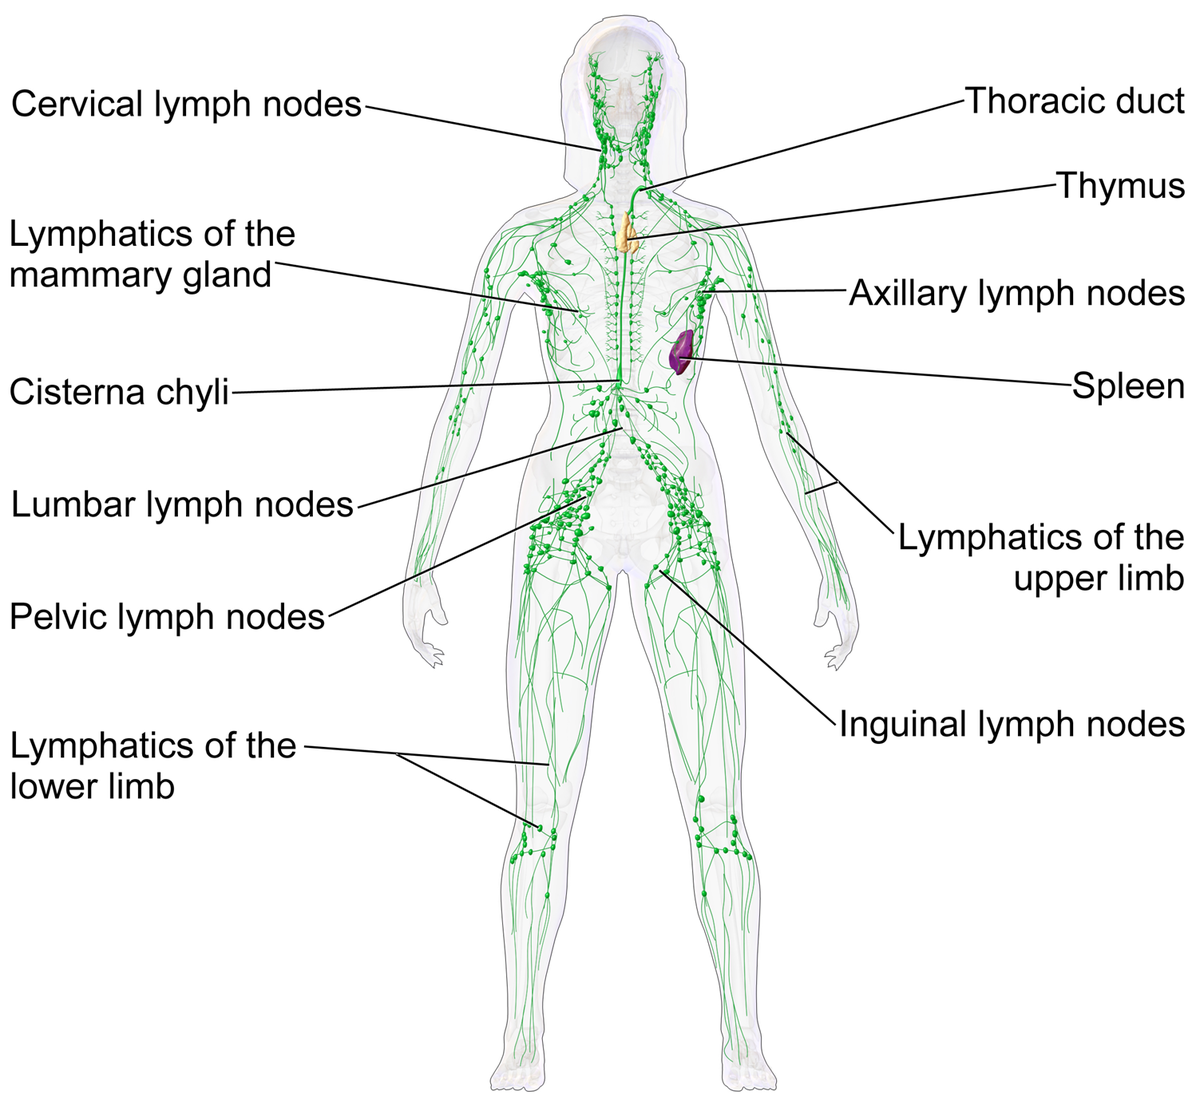 1200px-Blausen_0623_LymphaticSystem_Female.png